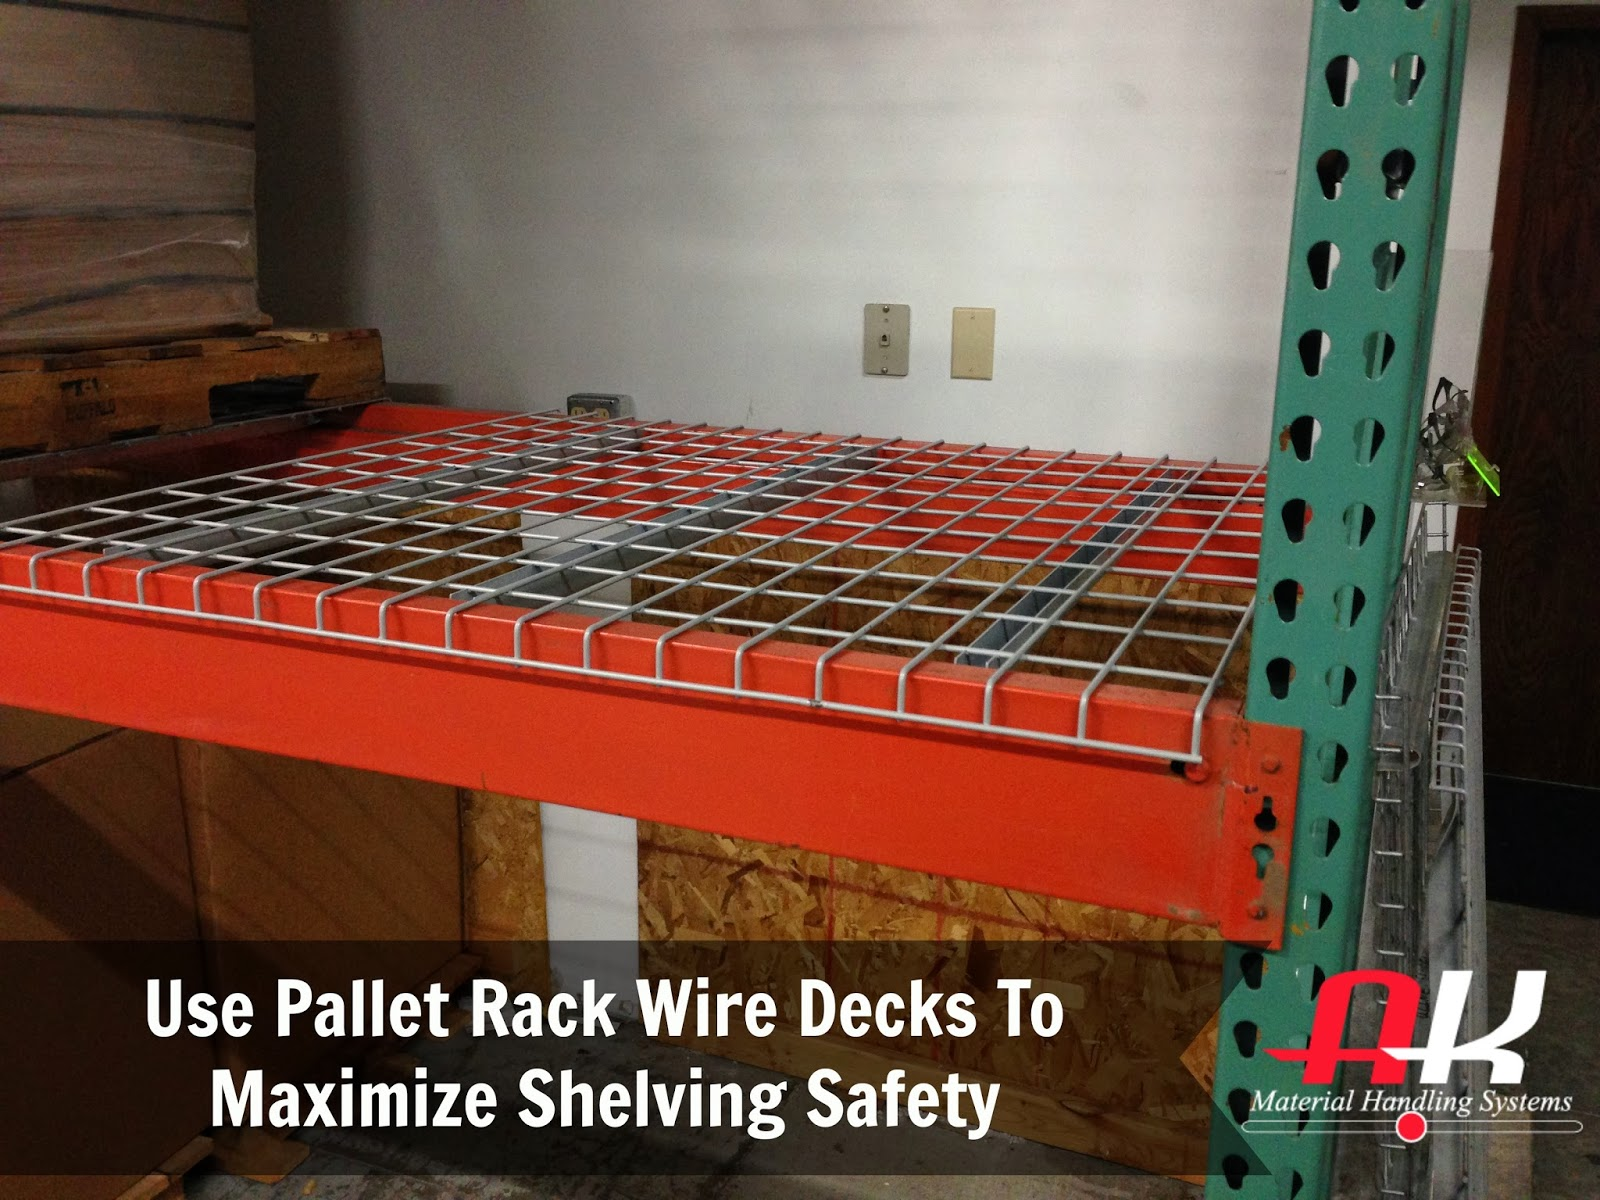 Use Pallet Rack Wire Decks To Maximize Shelving Safety